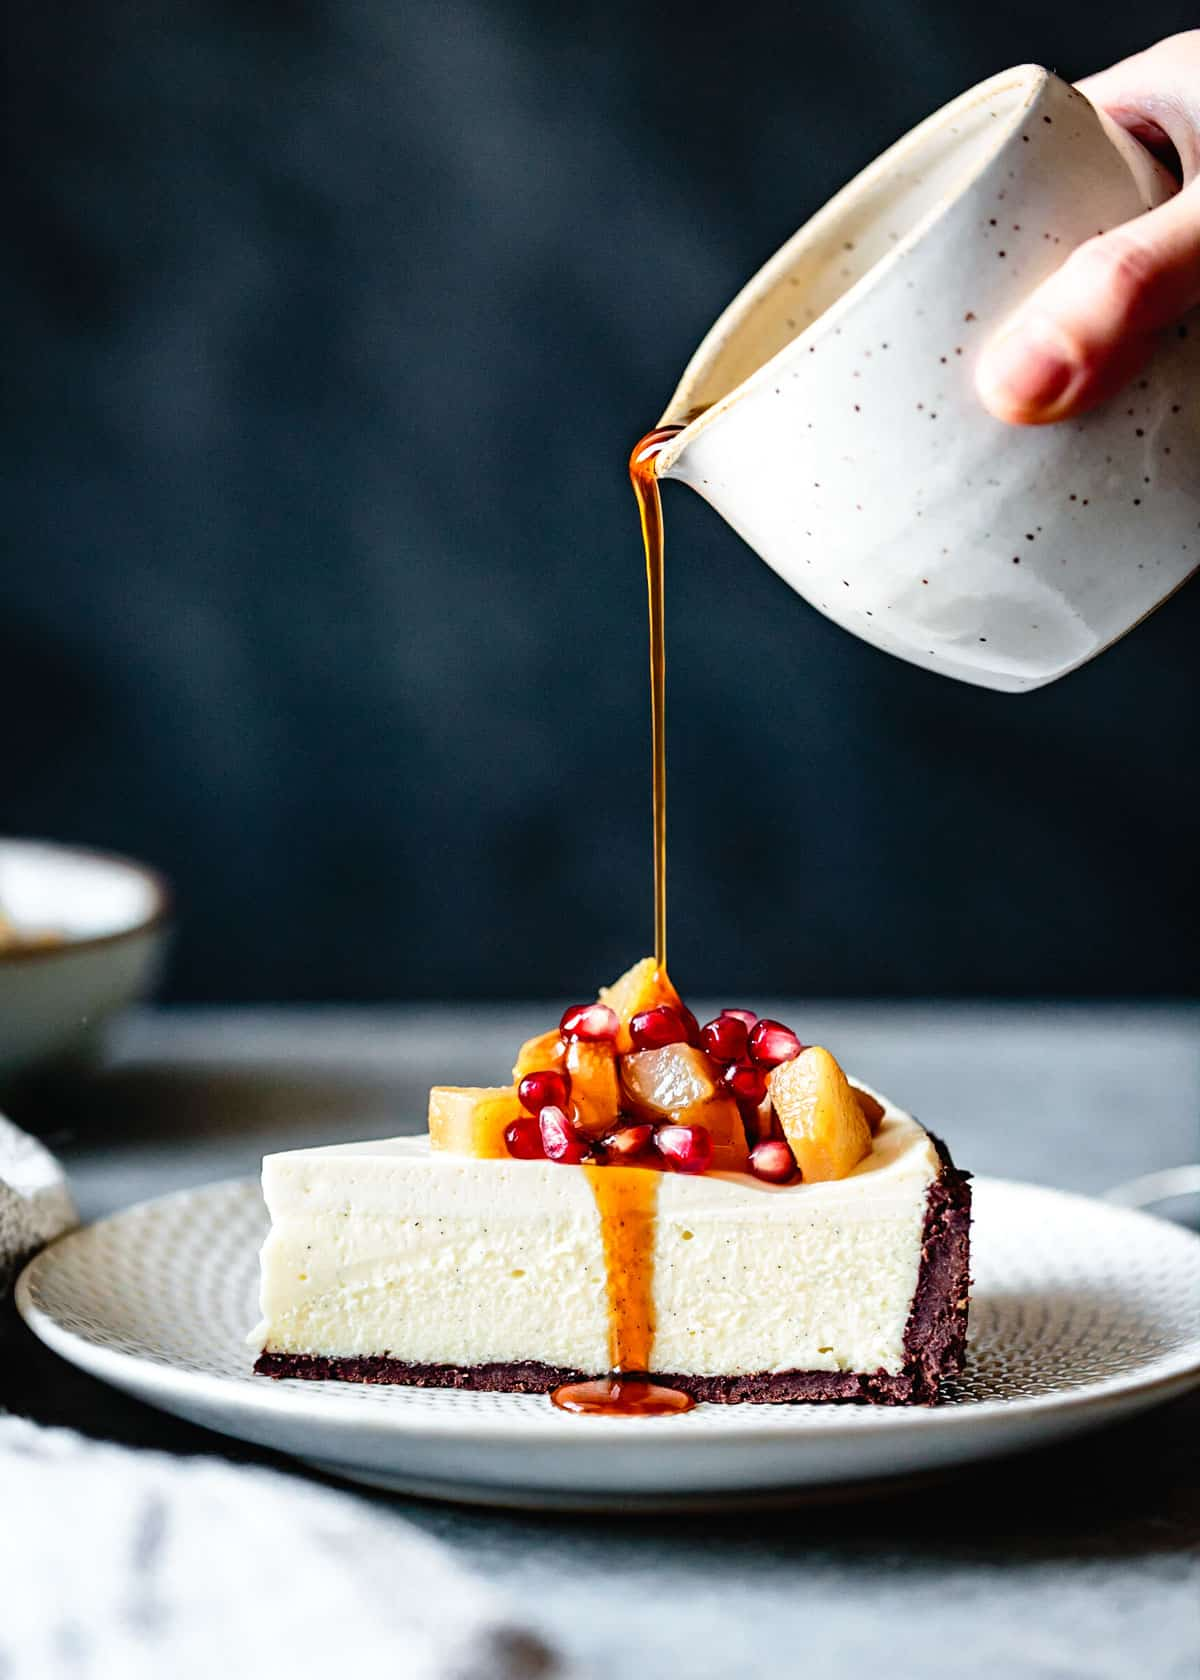 slice of cheesecake topped with poached pears and pomegranate being drizzled with caramel